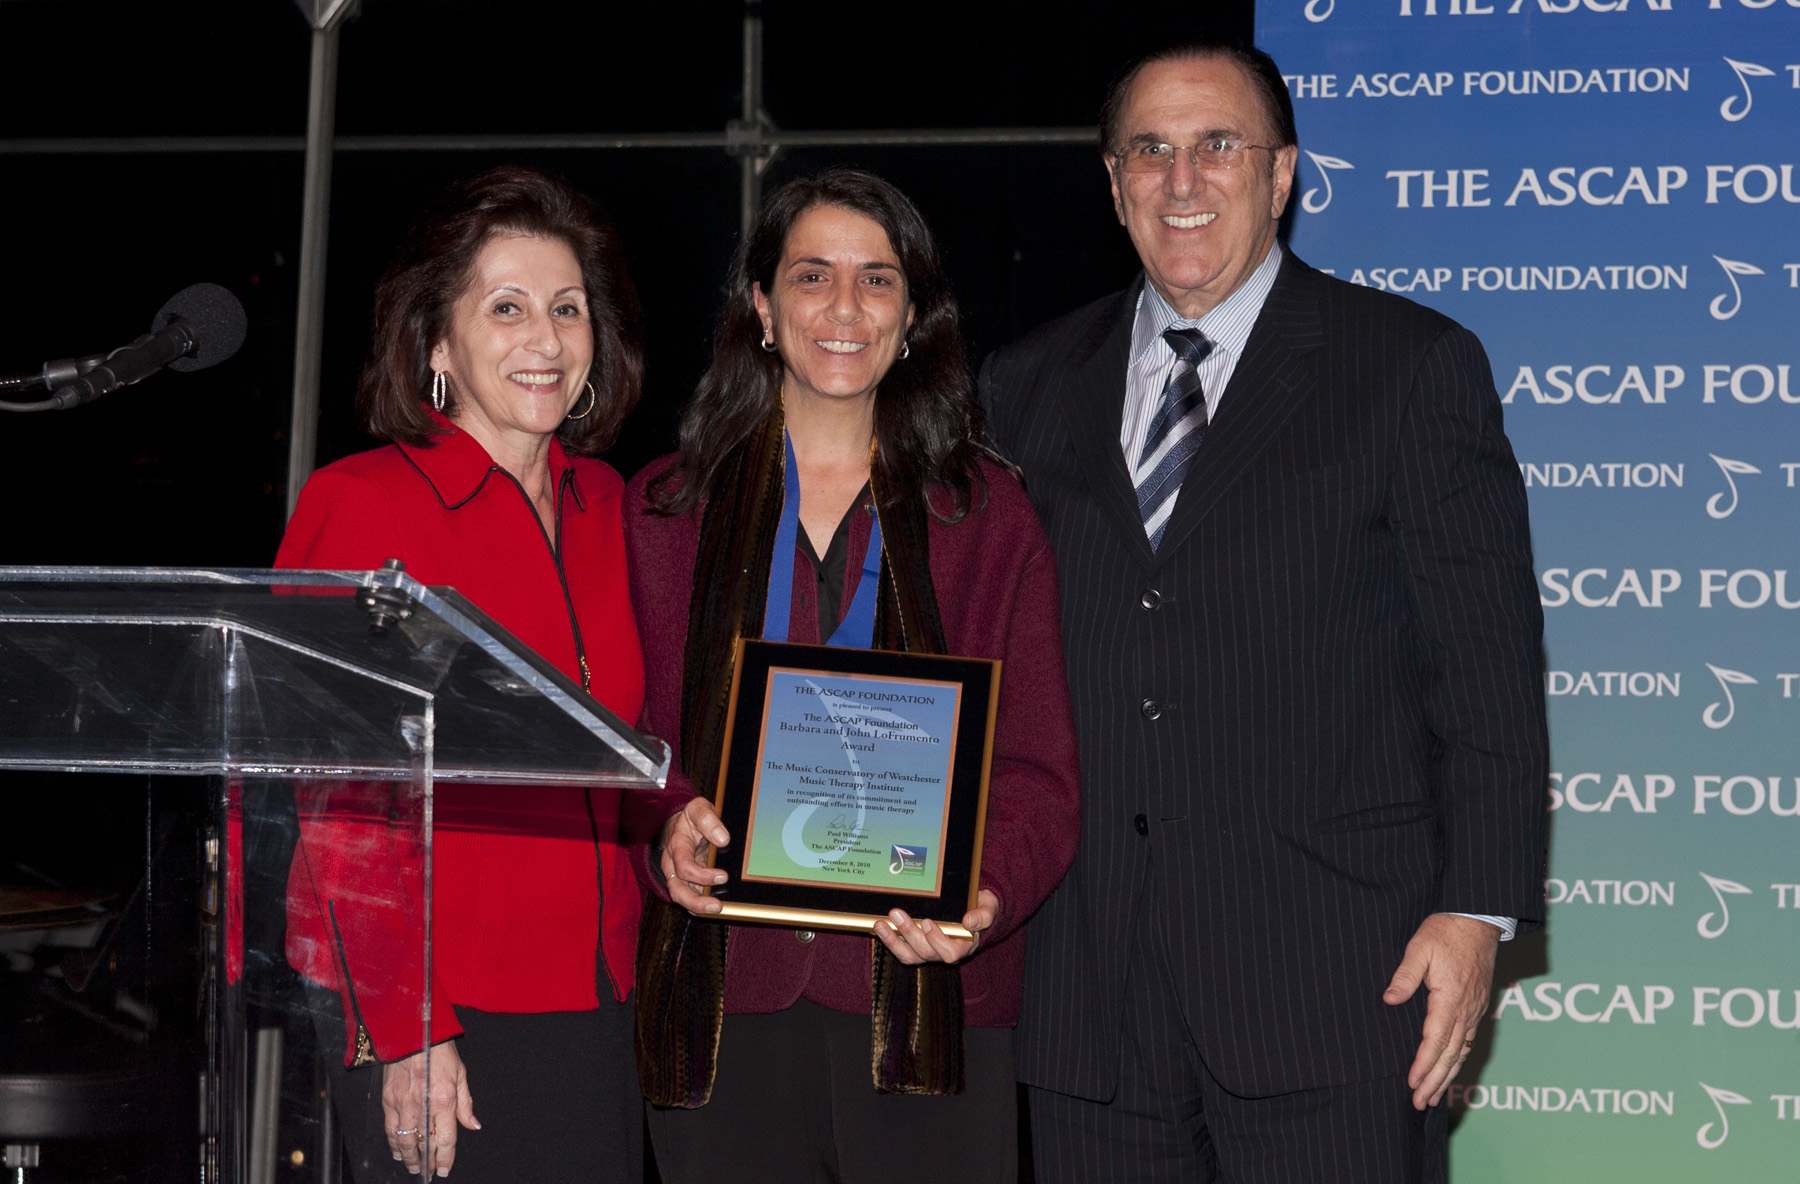 ASCAP CEO John LoFrumento (r) and his wife Barbara (l) present The ASCAP Foundation Barbara and John LoFrumento Award to Lisa Sandagata, Director of Outreach Services for the Music Conservatory of Westchester's Music Therapy Institute.